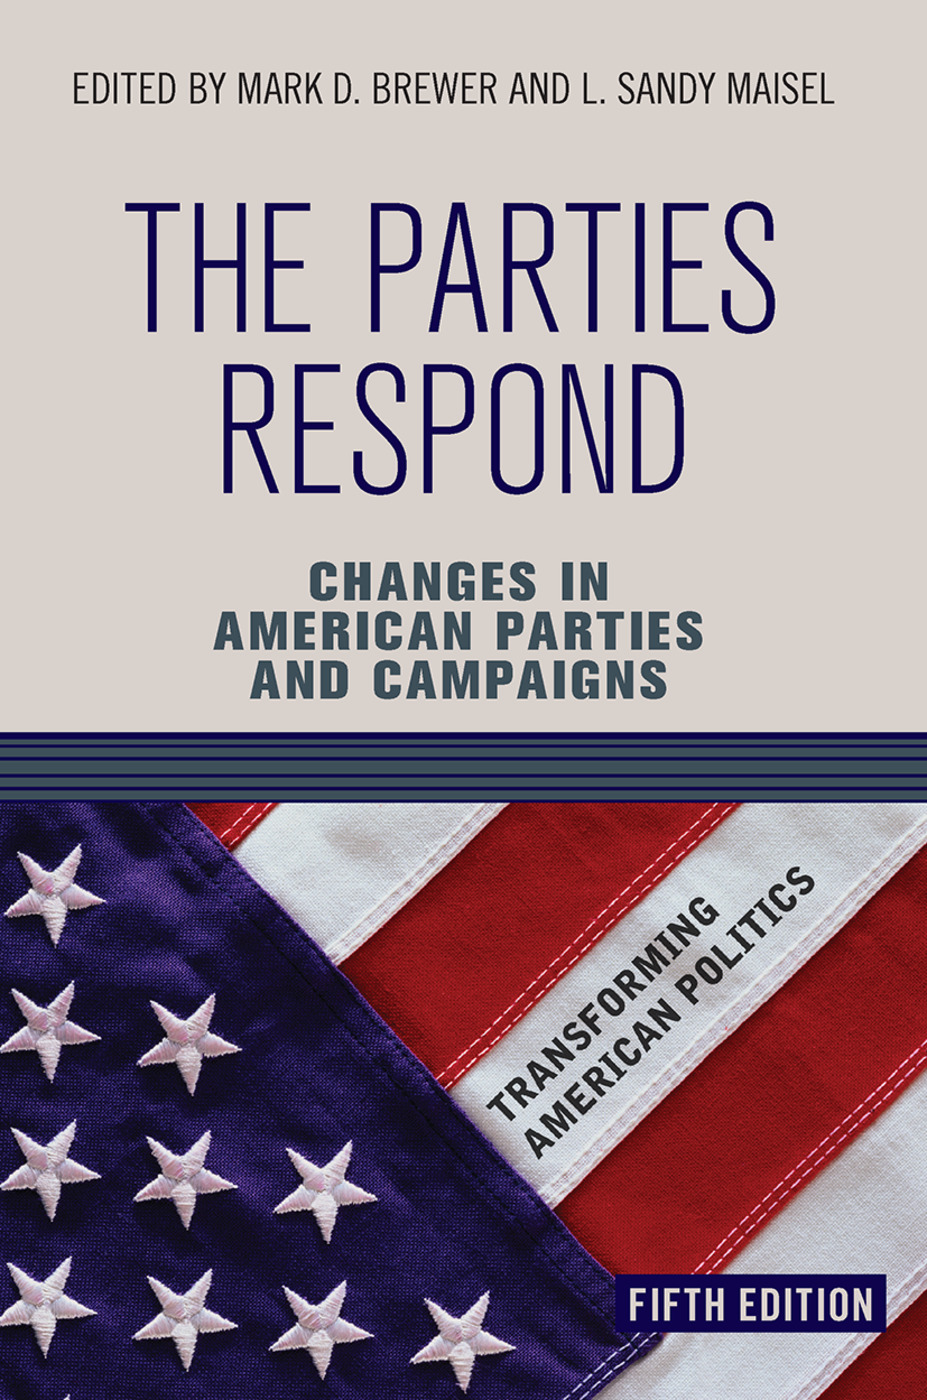 The Parties Respond